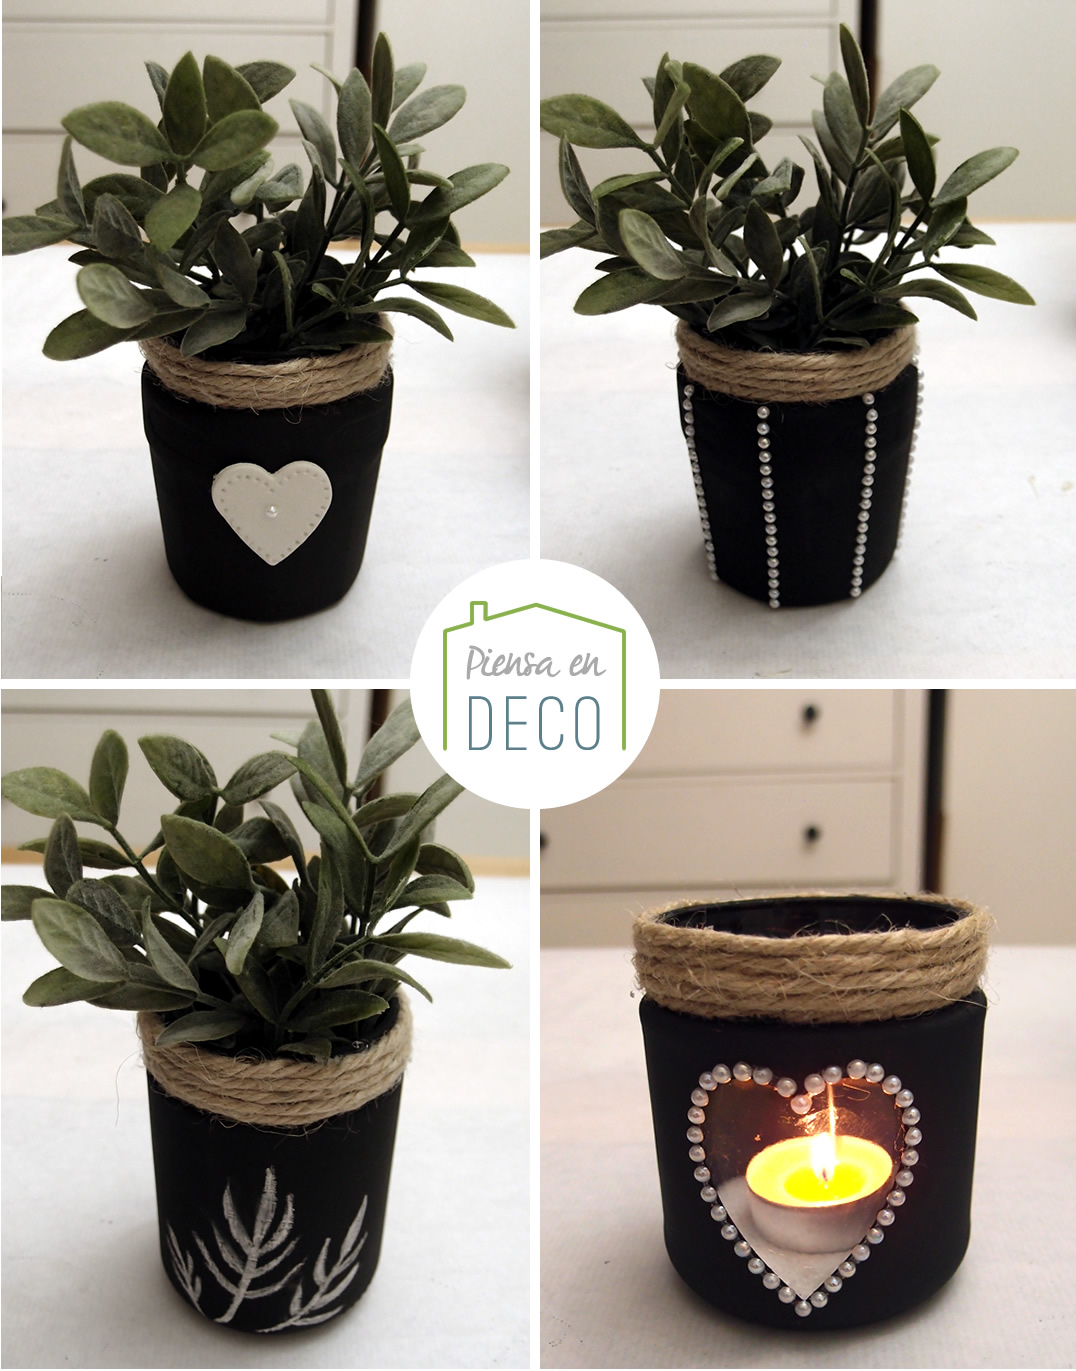 Diy ideas para decorar tarros de cristal piensa en deco for Reciclar botes de cristal decoracion